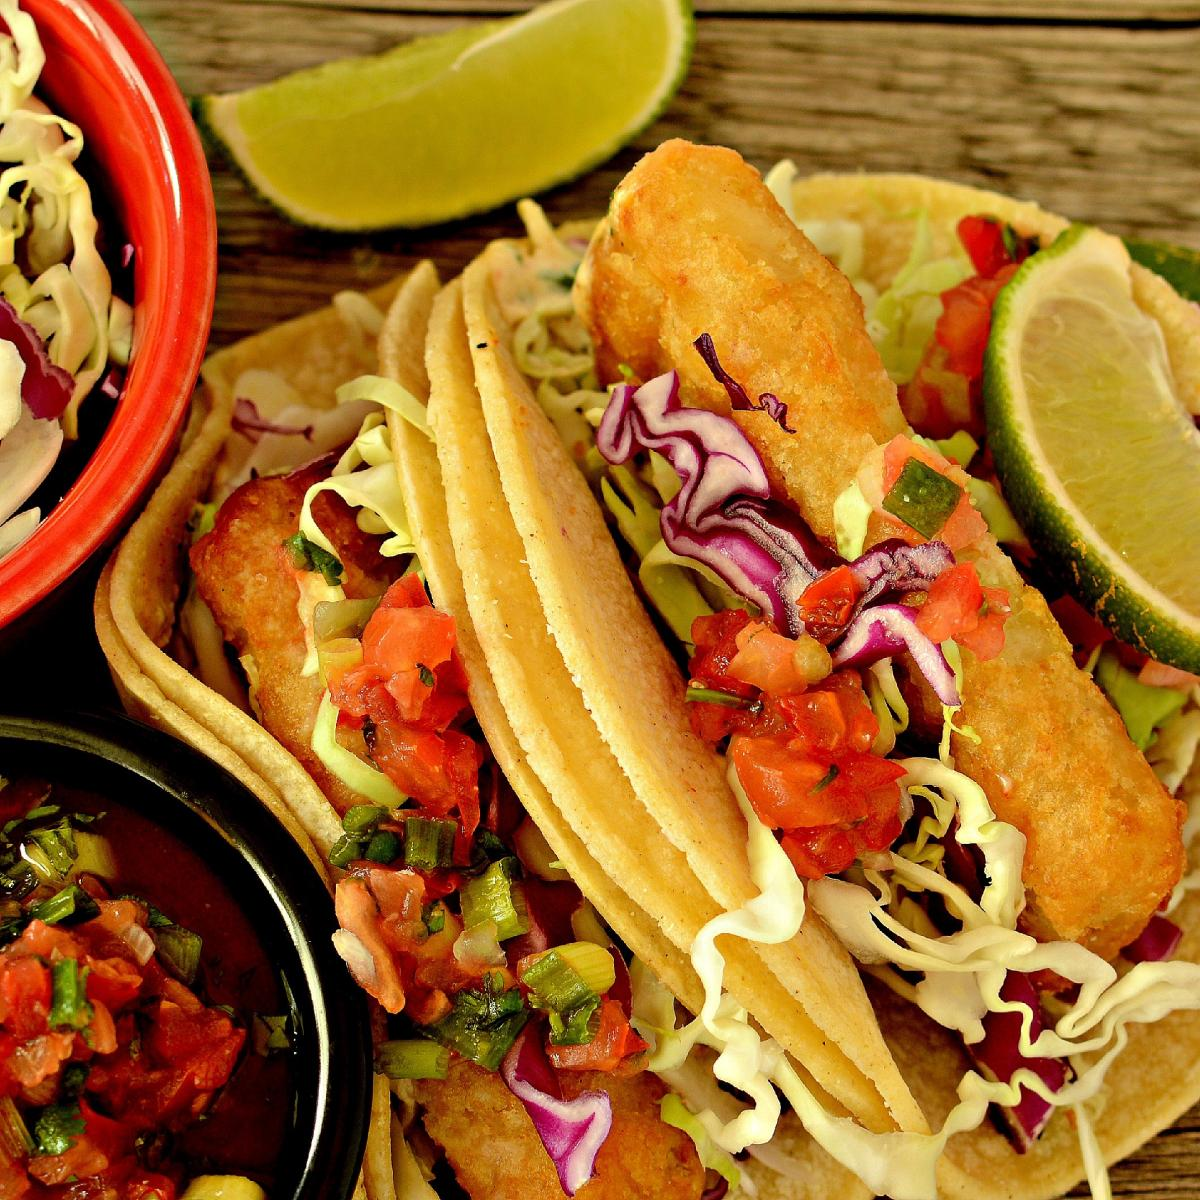 The Best Fish Taco Recipes Plus Taco Tips